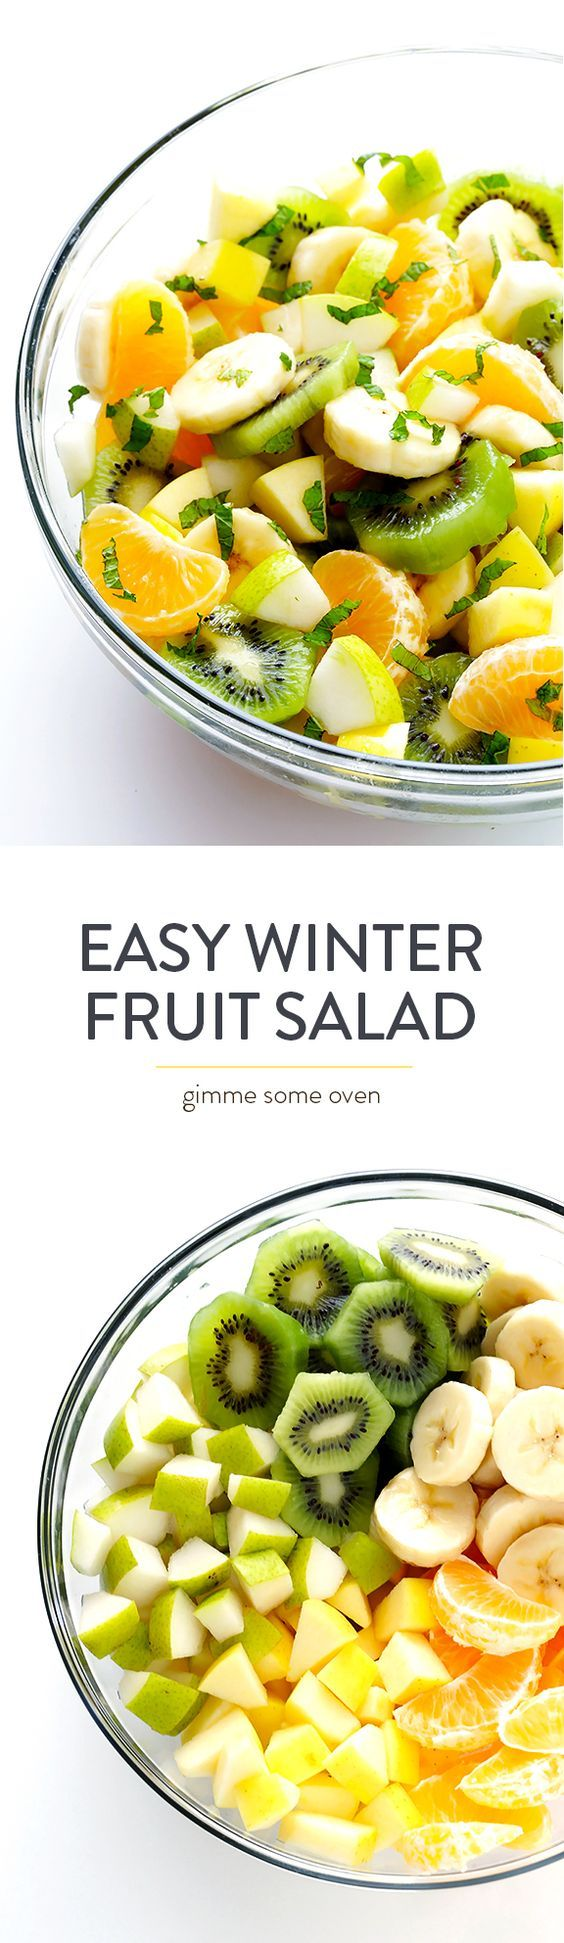 This Easy Winter Fruit Salad is made with a few simple seasonal ingredients, it's naturally vegan and gluten-free, and so delicious and…